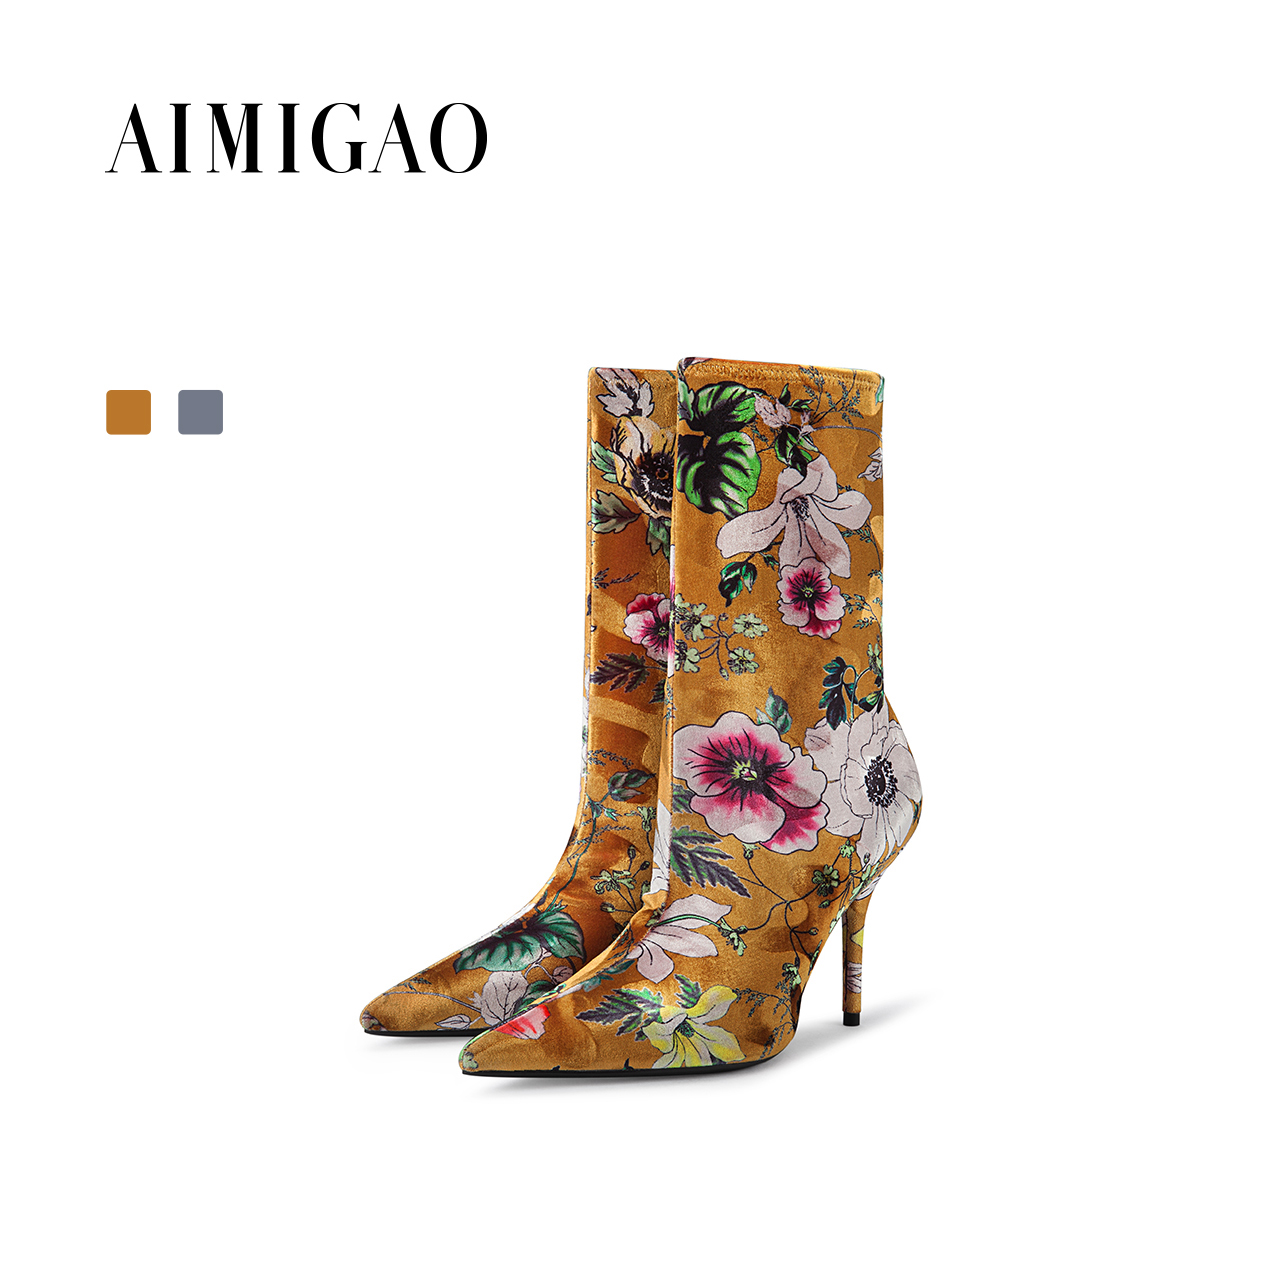 AIMIGAO fashion floral socks boots 2017 autumn winter new pointed toe sexy thin high heel women Mid-calf boots luxury 2018 new arrival fashion winter shoe genuine leather pointed toe high heel handmade party runway zipper women mid calf boots l11